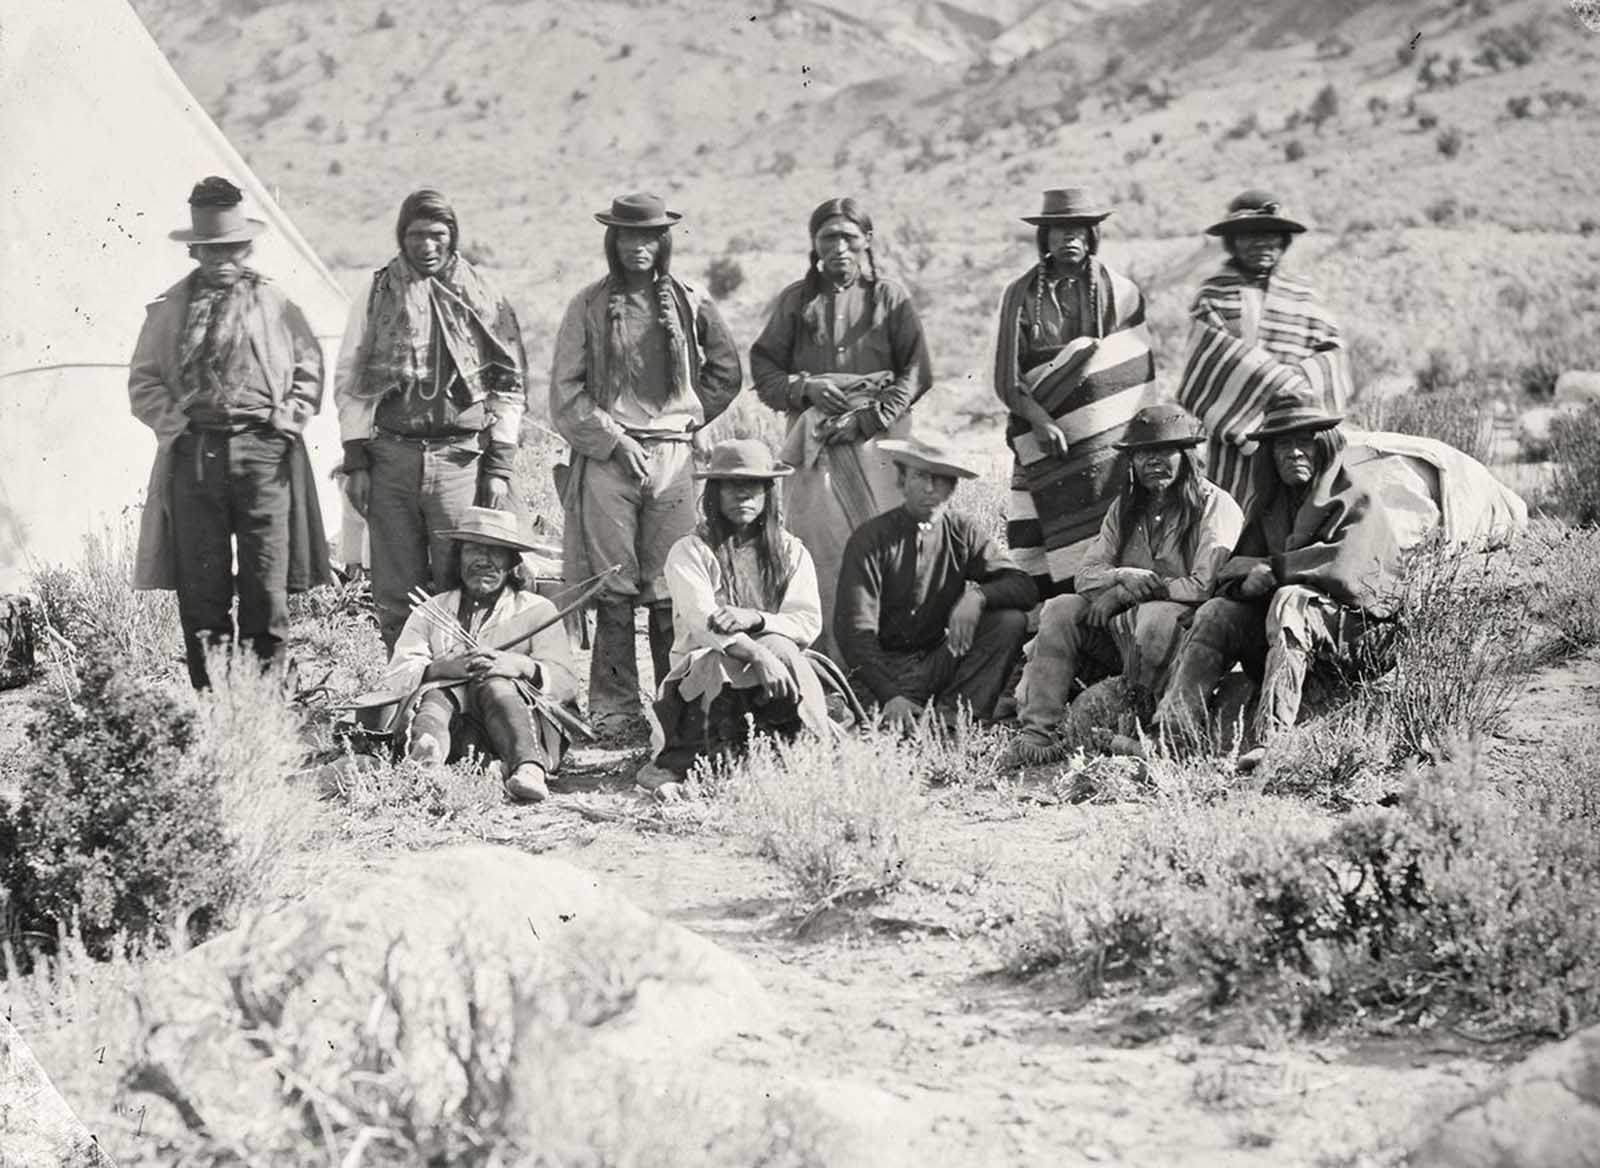 Pah-Ute (Paiute) Indian group, near Cedar, Utah, in 1872.